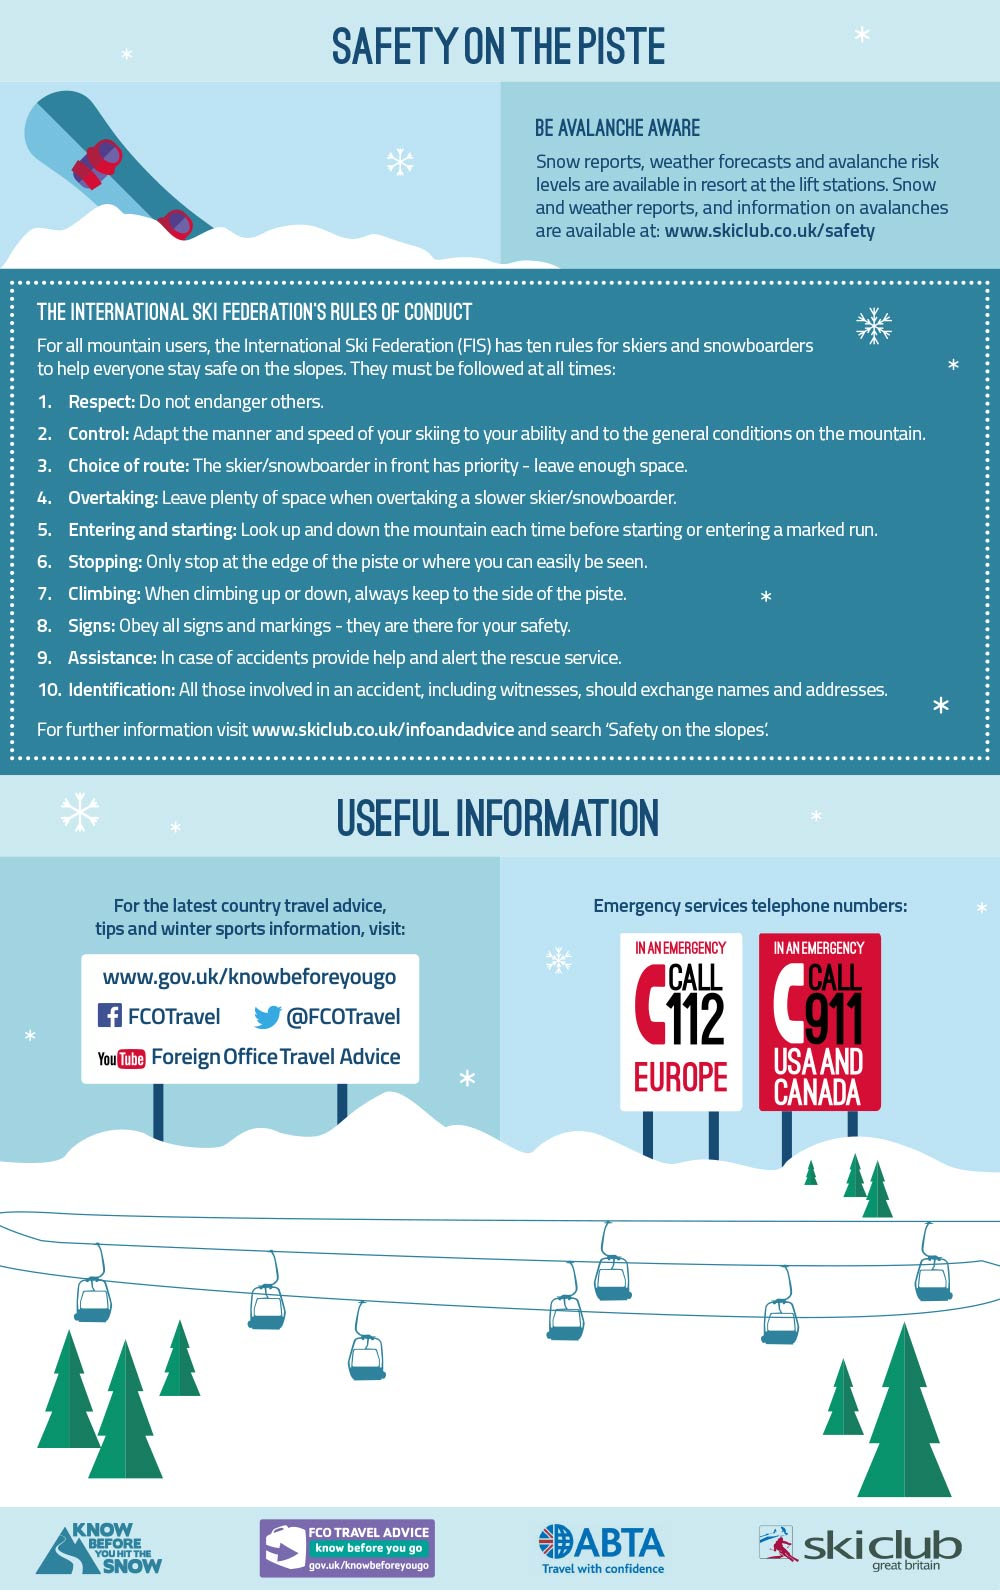 FCO_Winter_Sports_Checklist_Infographic-3